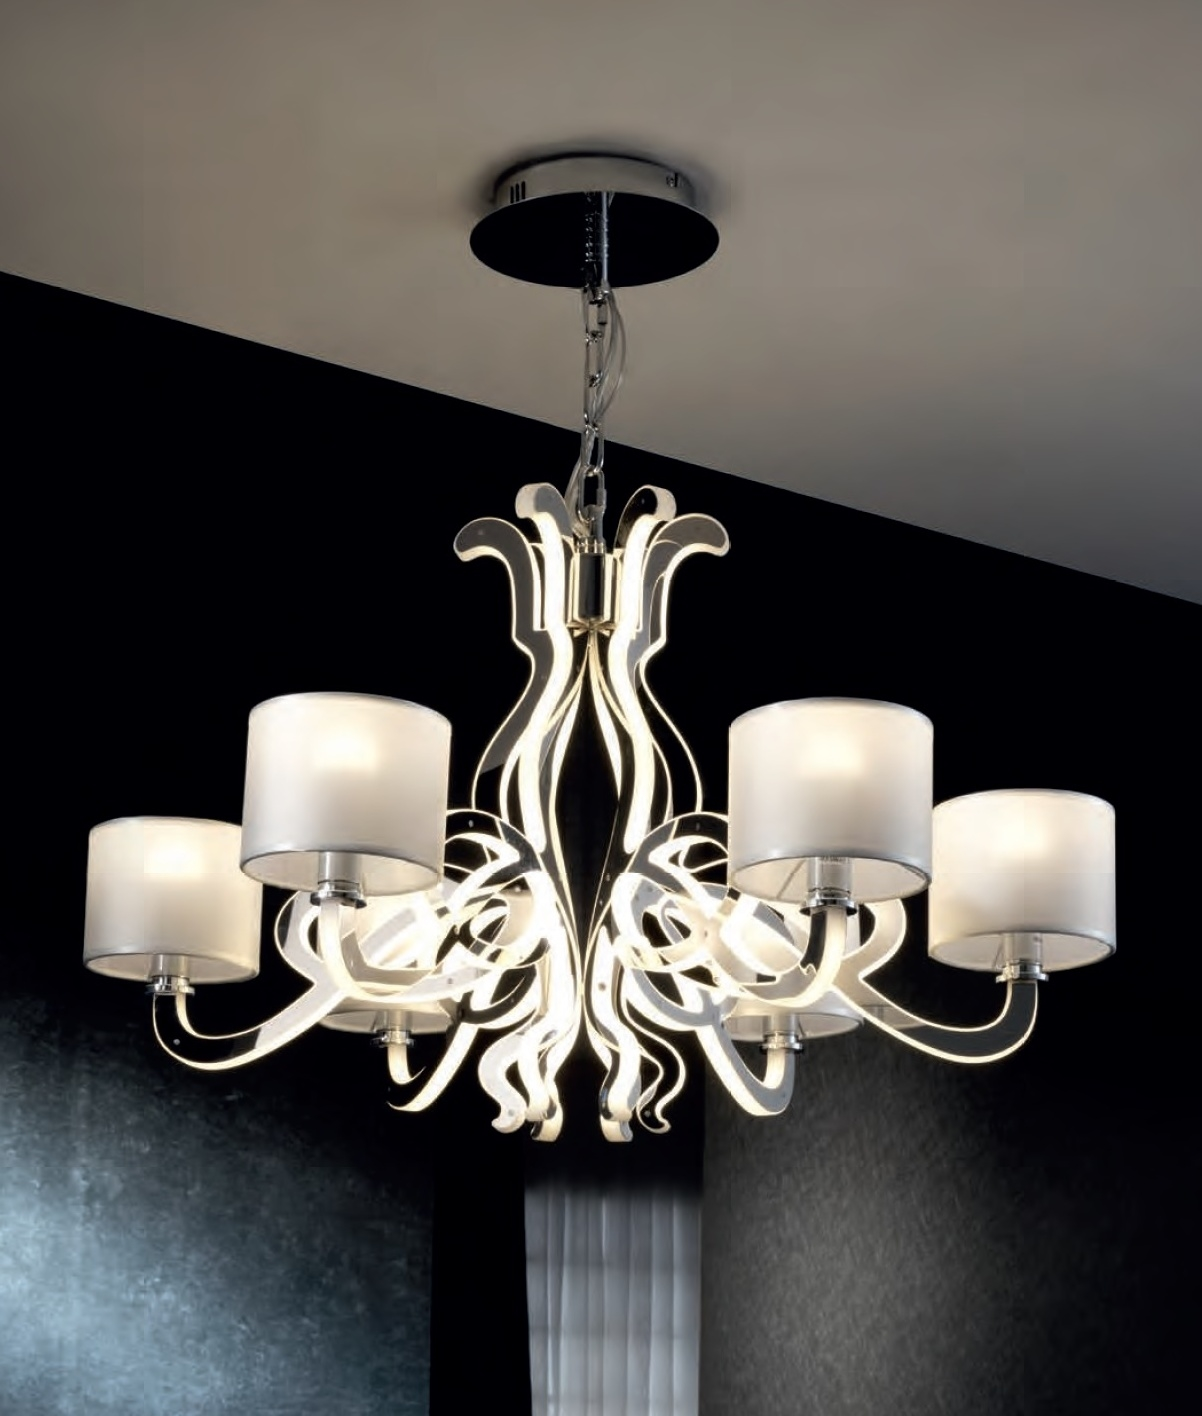 Chandelier Lighting In Contemporary Styles For Dining Room » Home ...